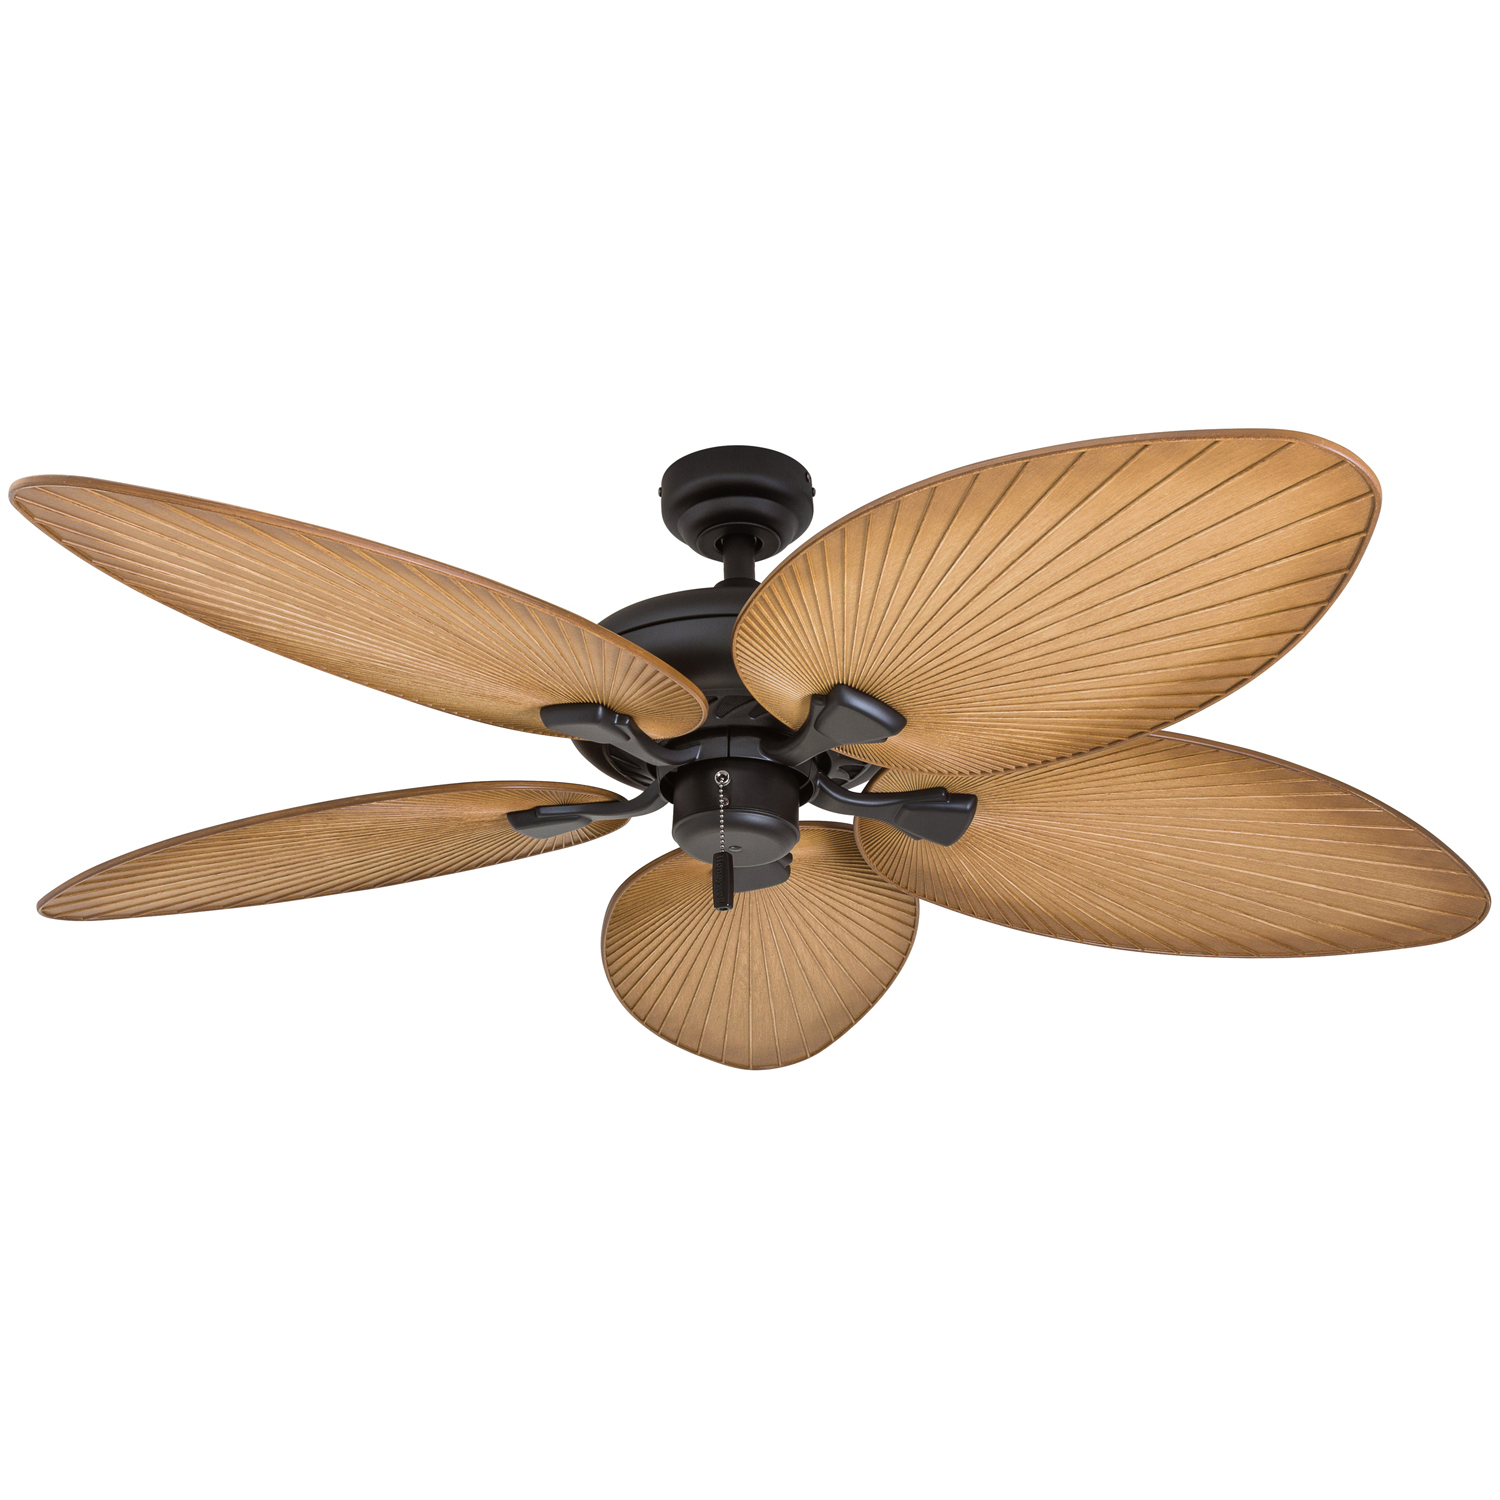 Leaf Style Ceiling Fans Honeywell Palm Valley 52 Quot Bronze Tropical Ceiling Fan With